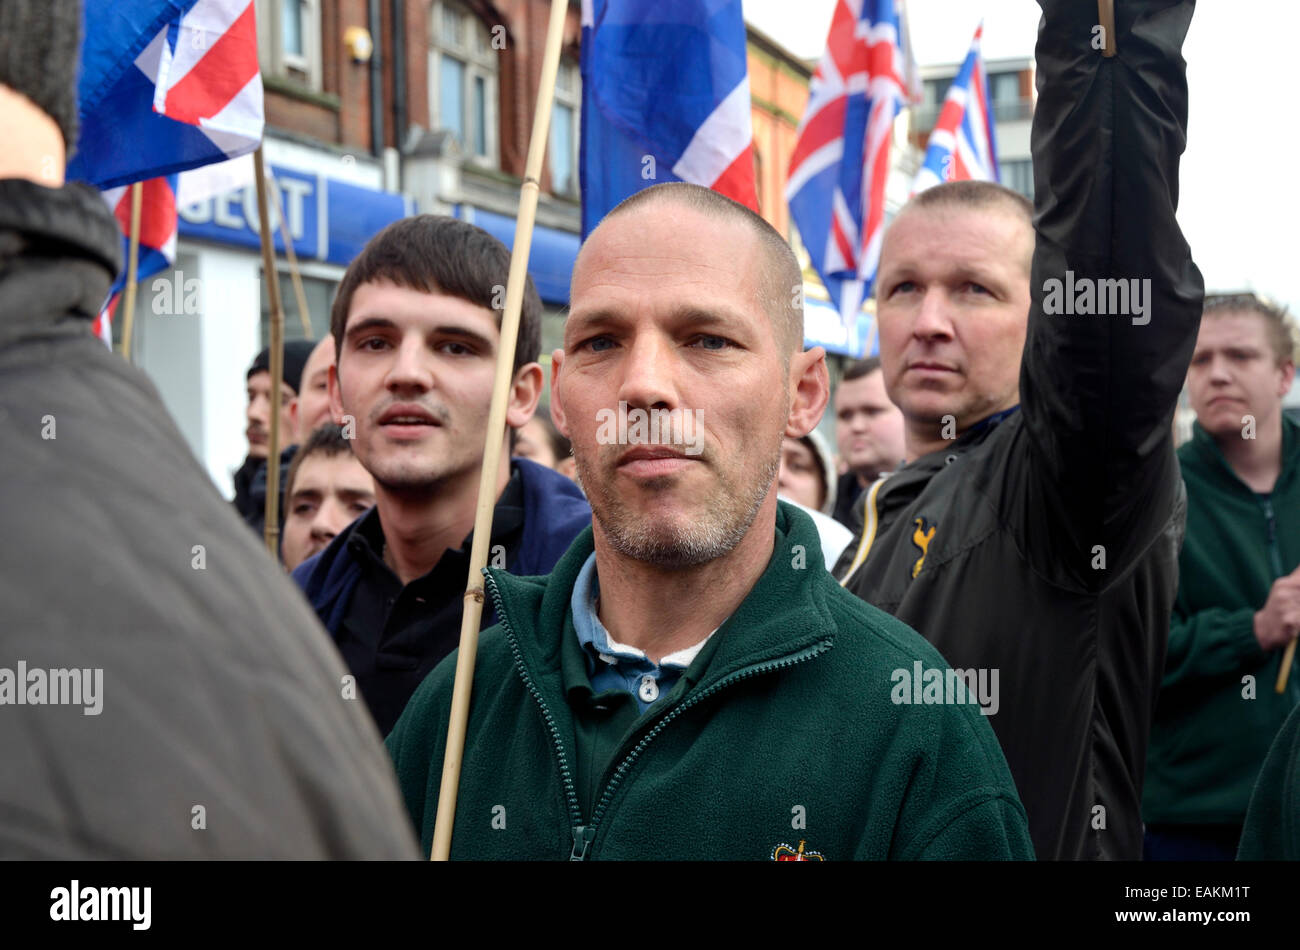 Rochester, Kent, England, UK. Britain First (right-wing political group) march in Rochester ahead of the 2014 by - Stock Image